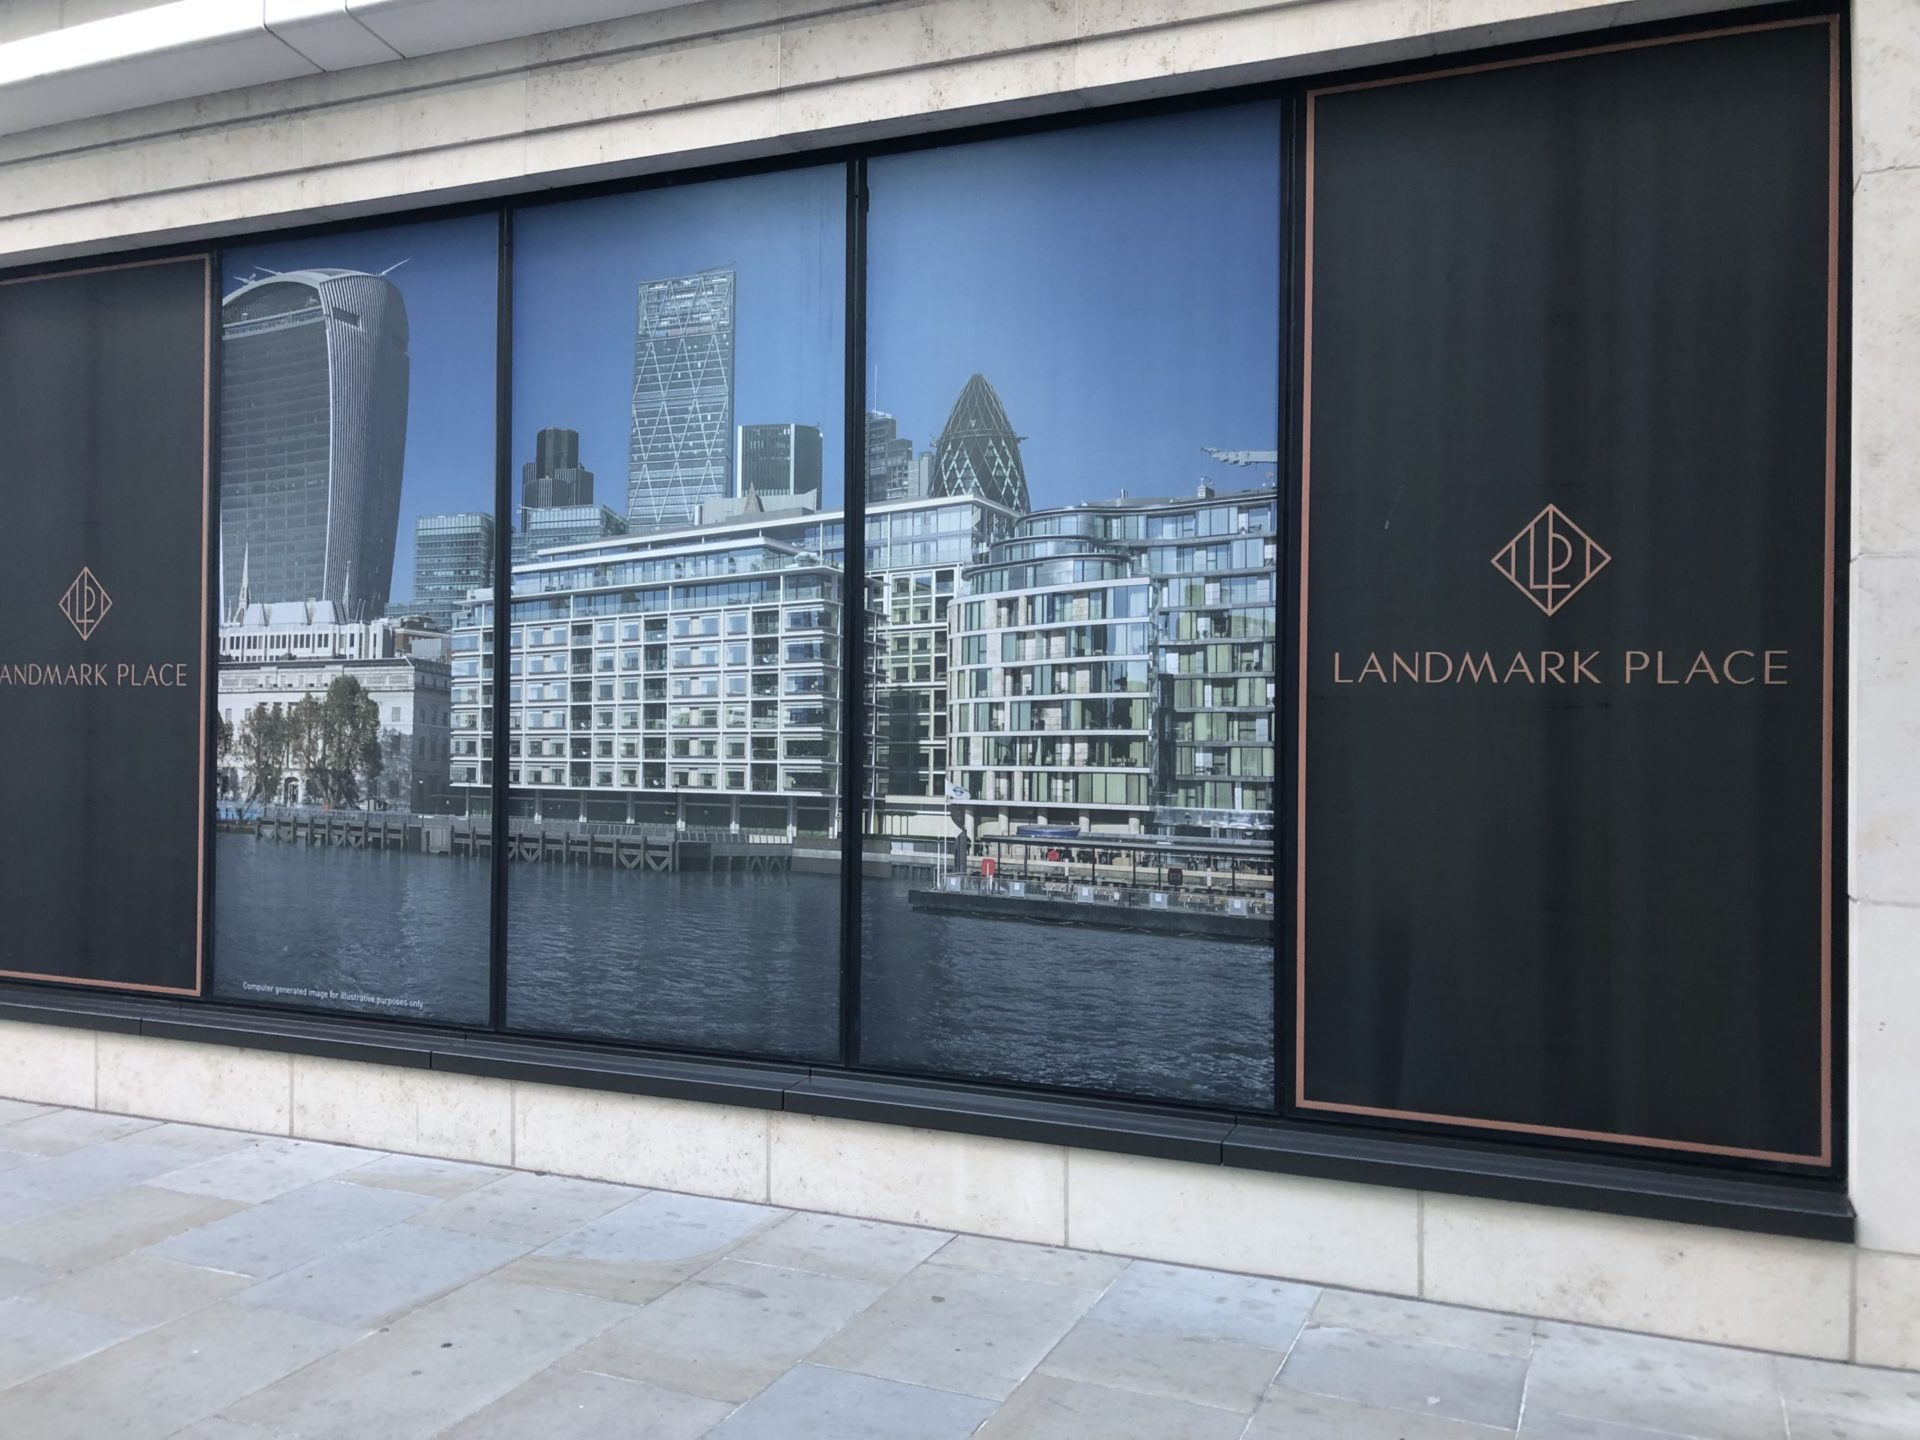 retail-graphics-building-wrap-perforated-window-film